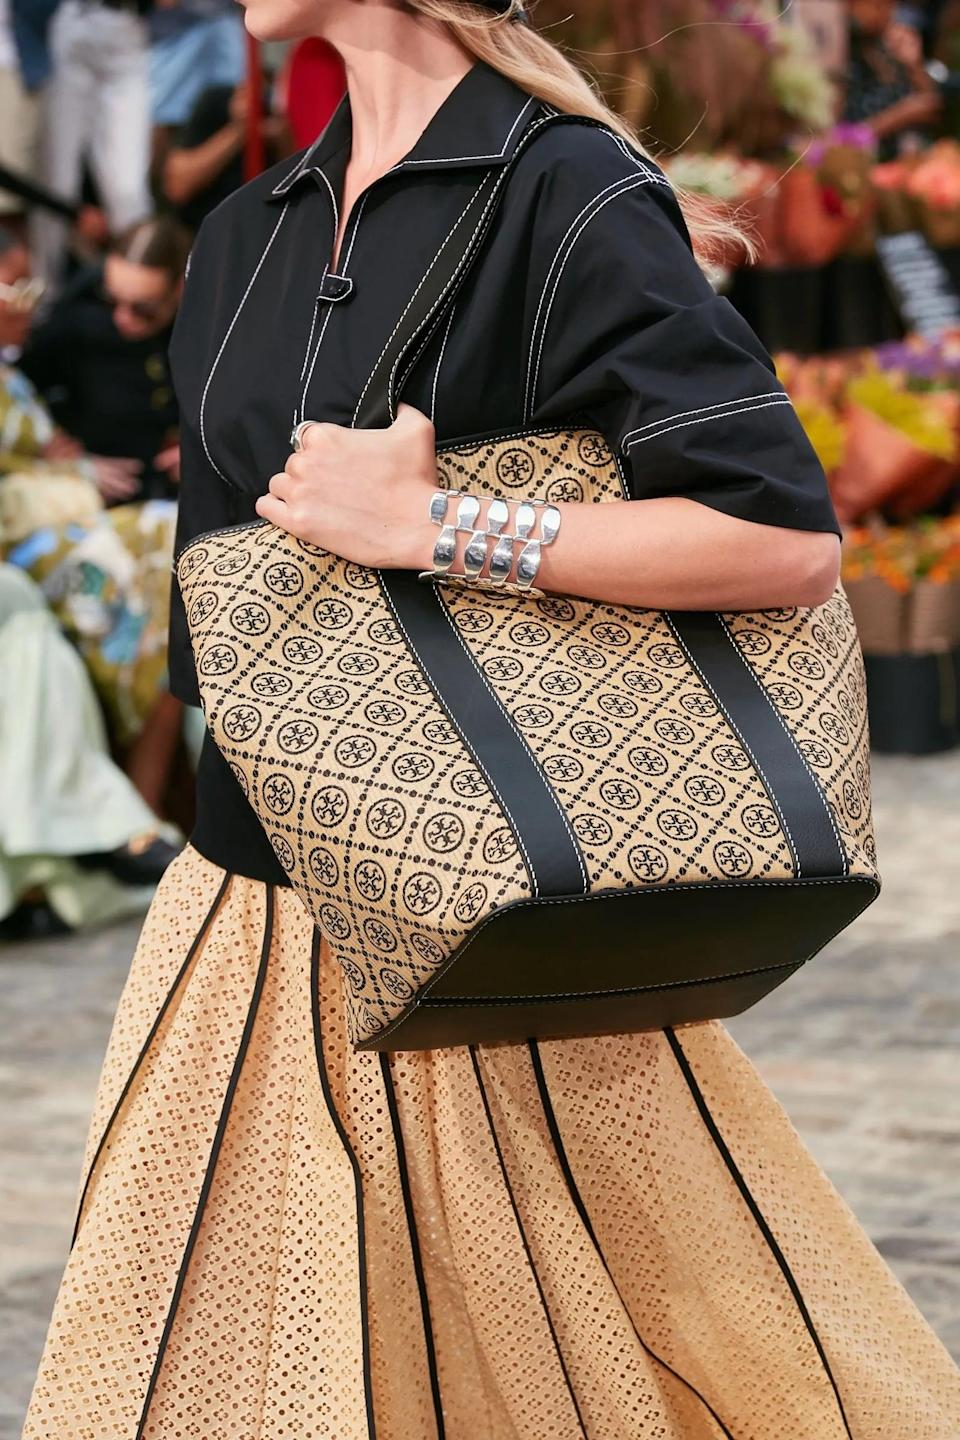 <p>A bag from Tory Burch spring 2022 collection.</p>